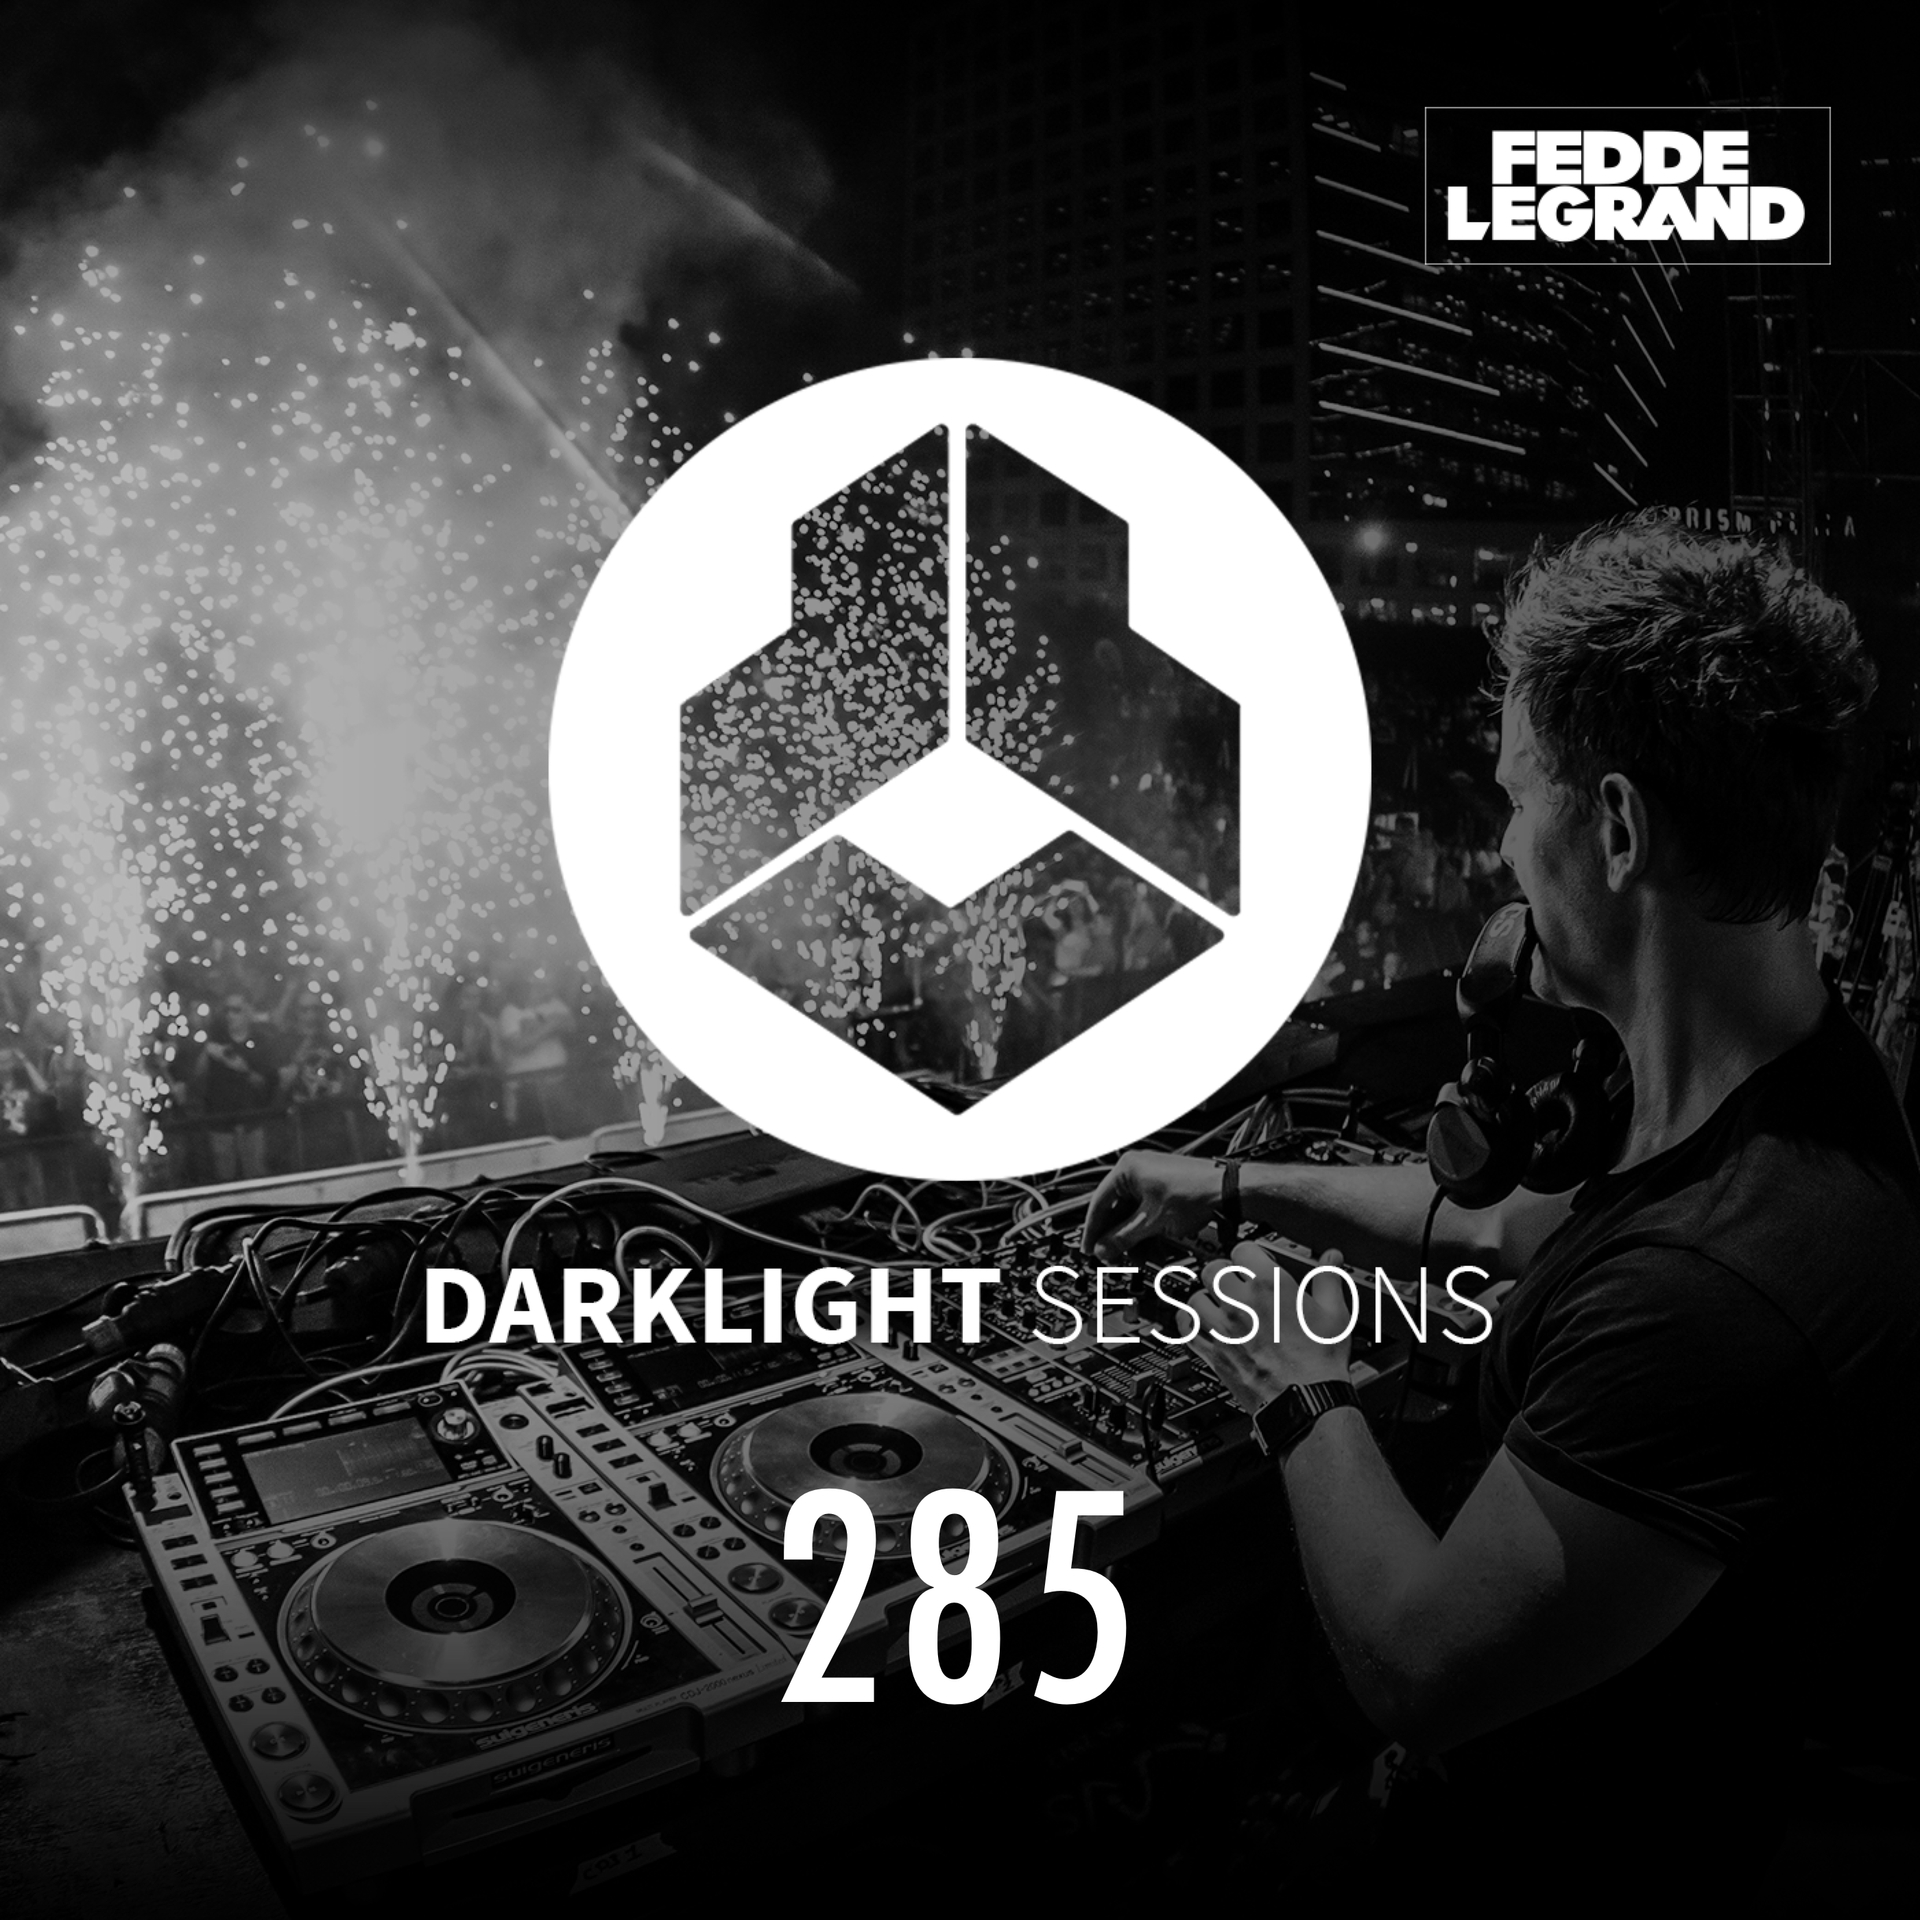 Darklight Sessions 285